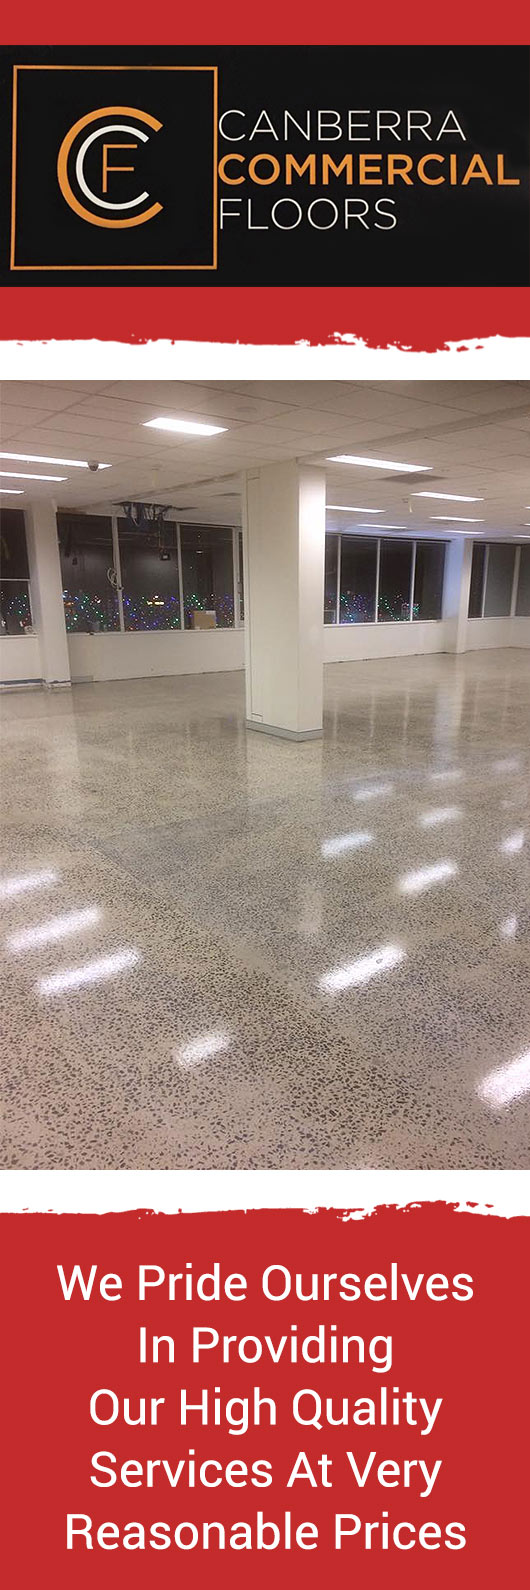 Canberra commercial floors concrete cutting grinding drilling canberra commercial floors promotion dailygadgetfo Images